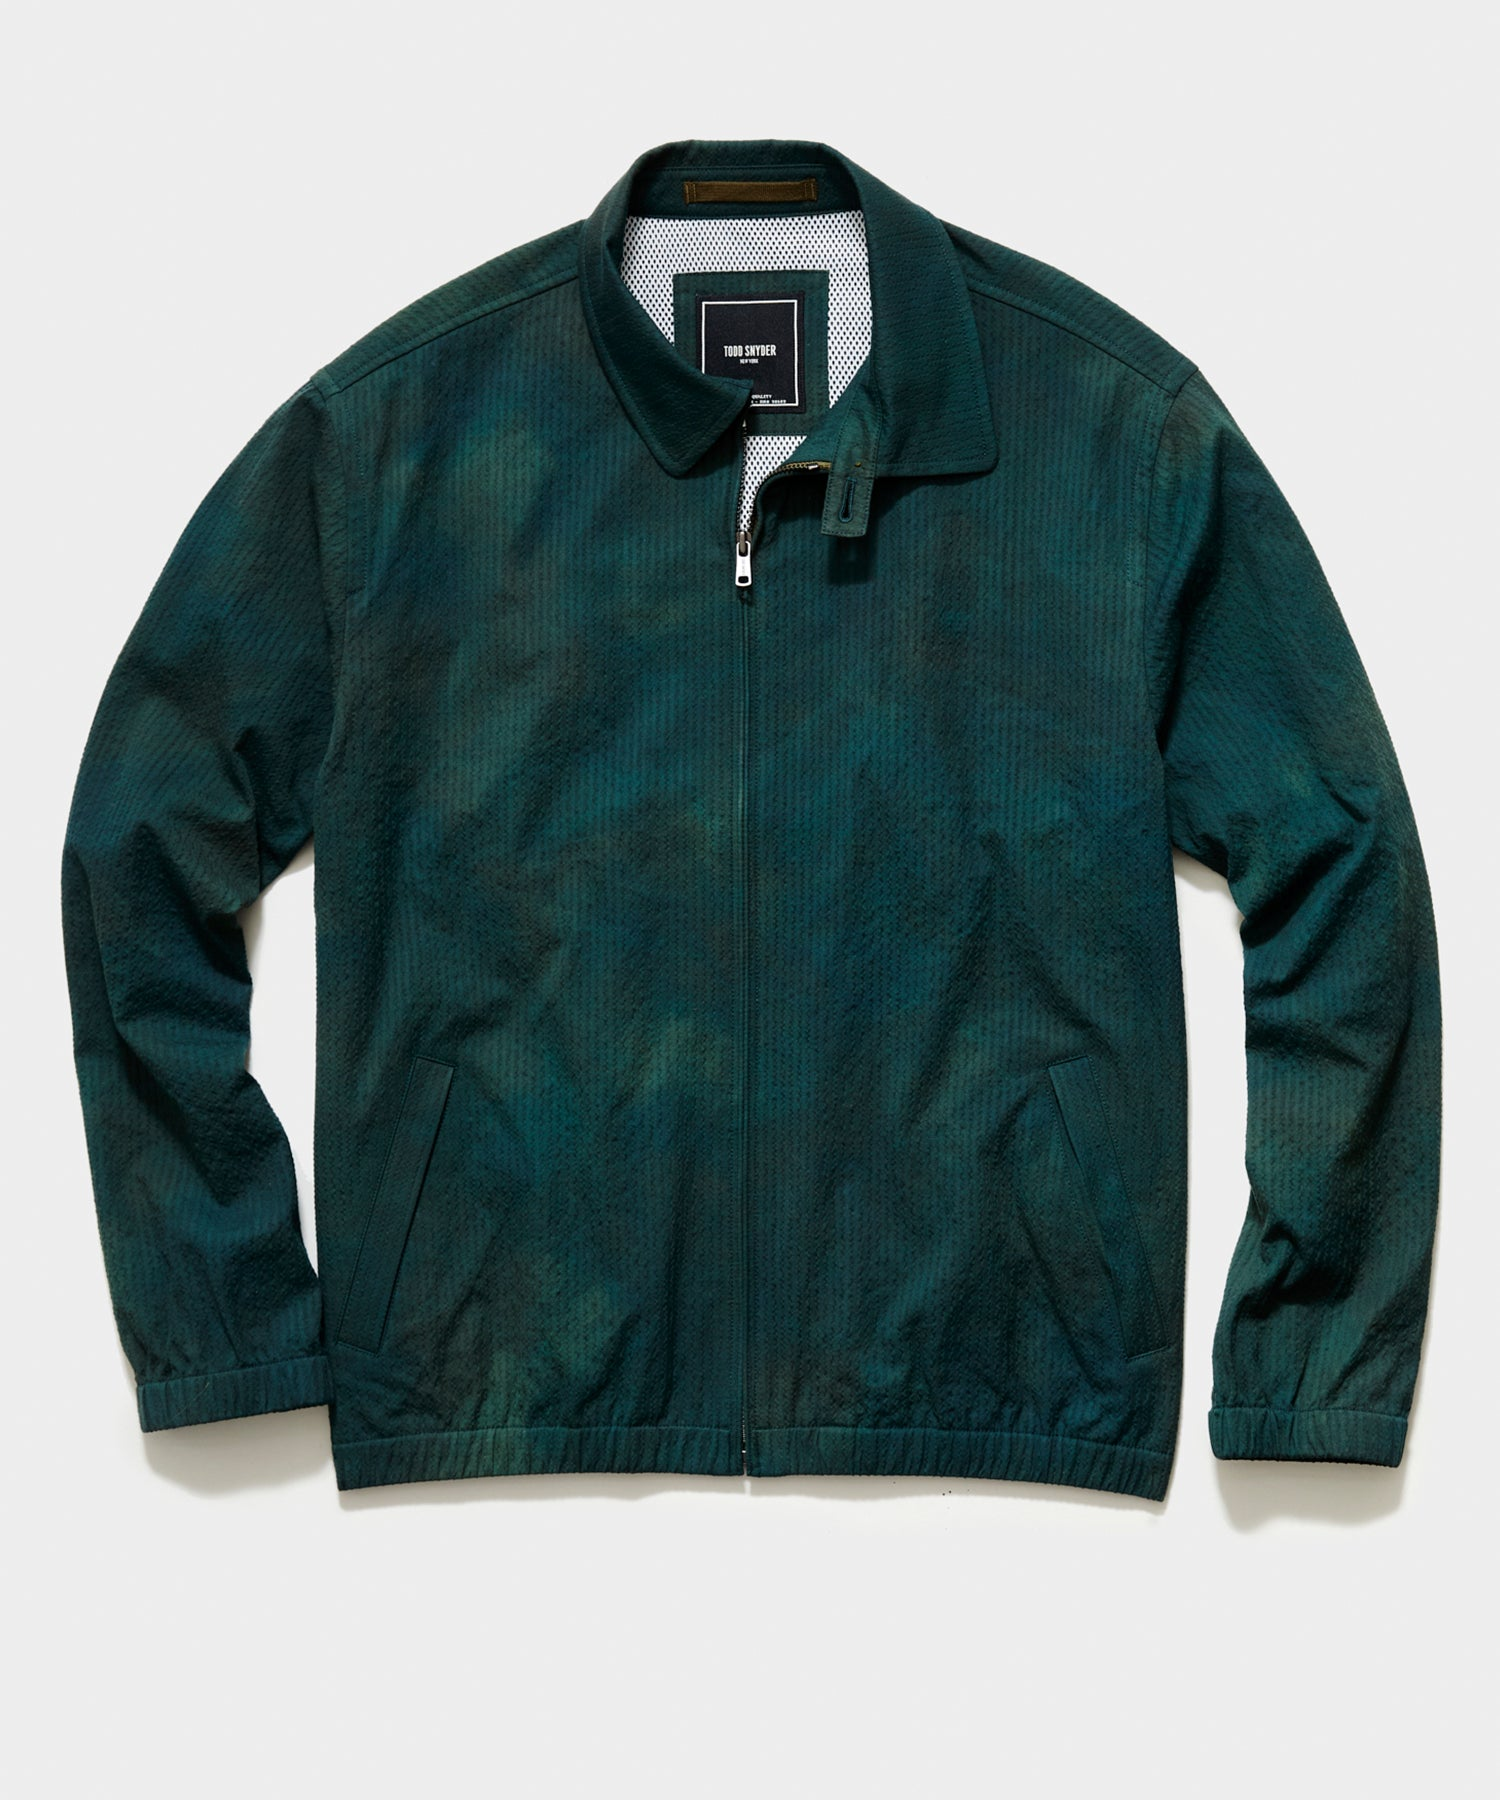 Italian Tie Dye Seersucker Club Jacket in Green